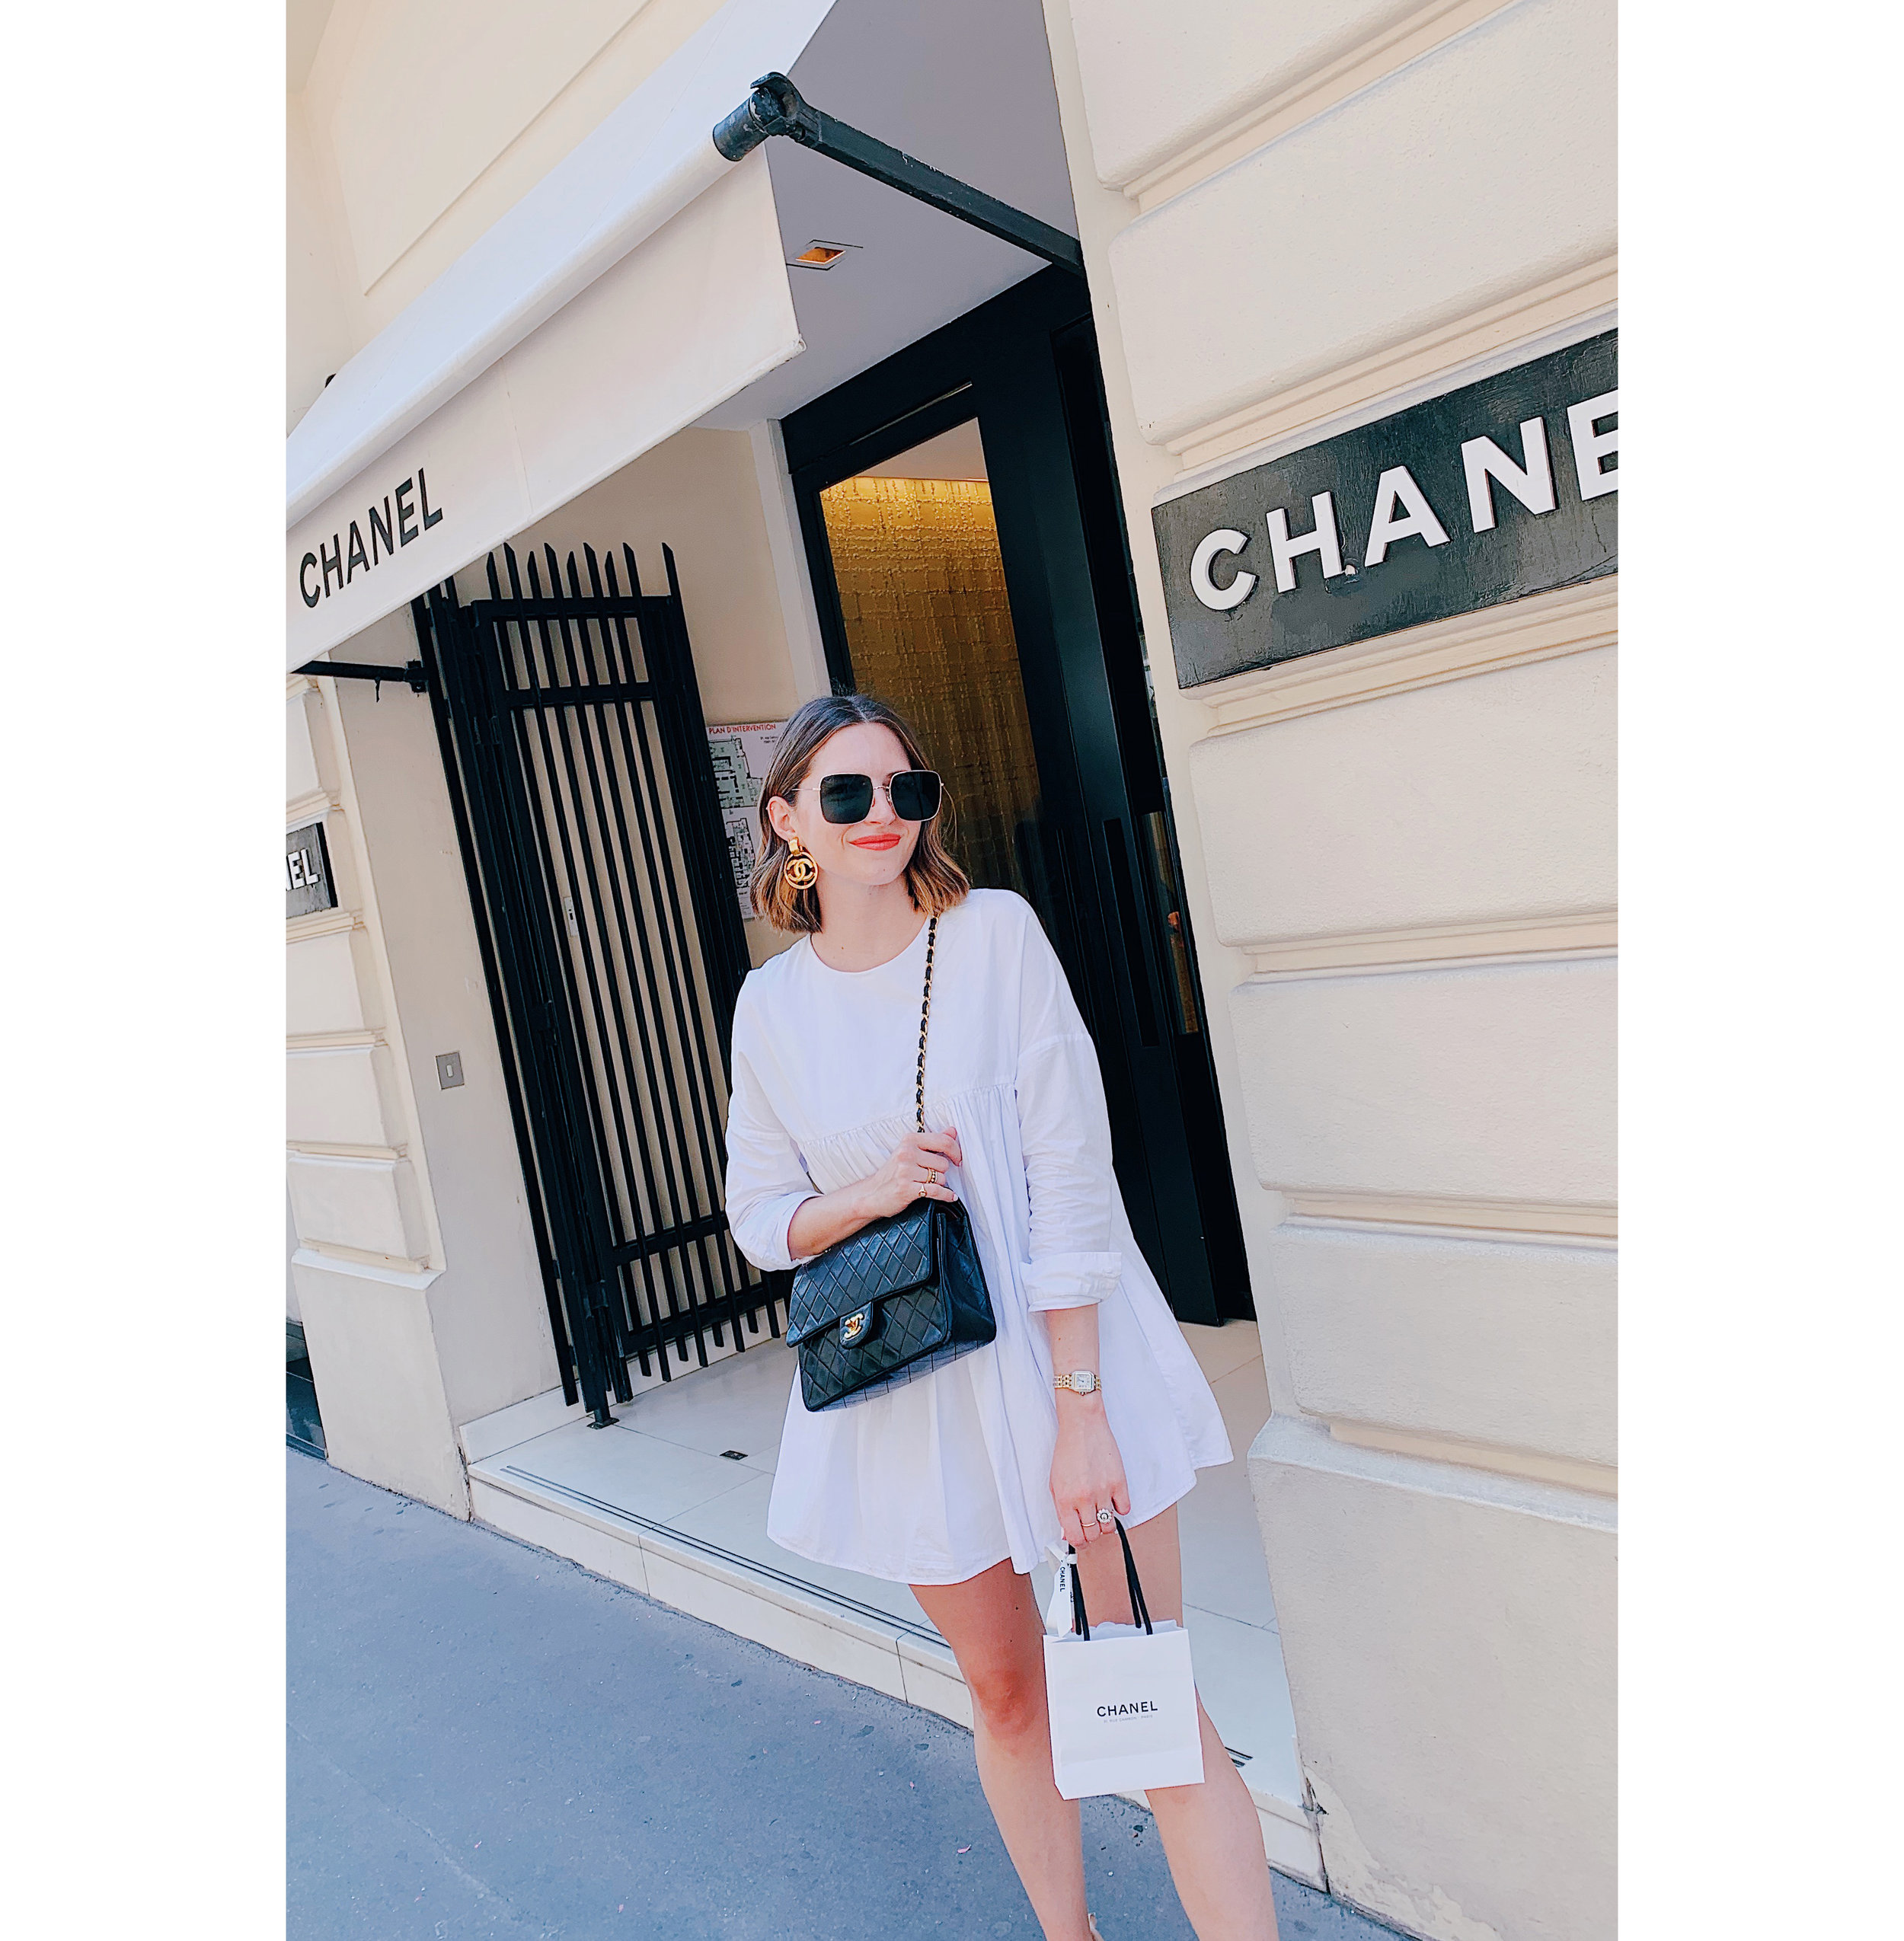 Paris 7 Chanel 31 Rue Cambon.jpg